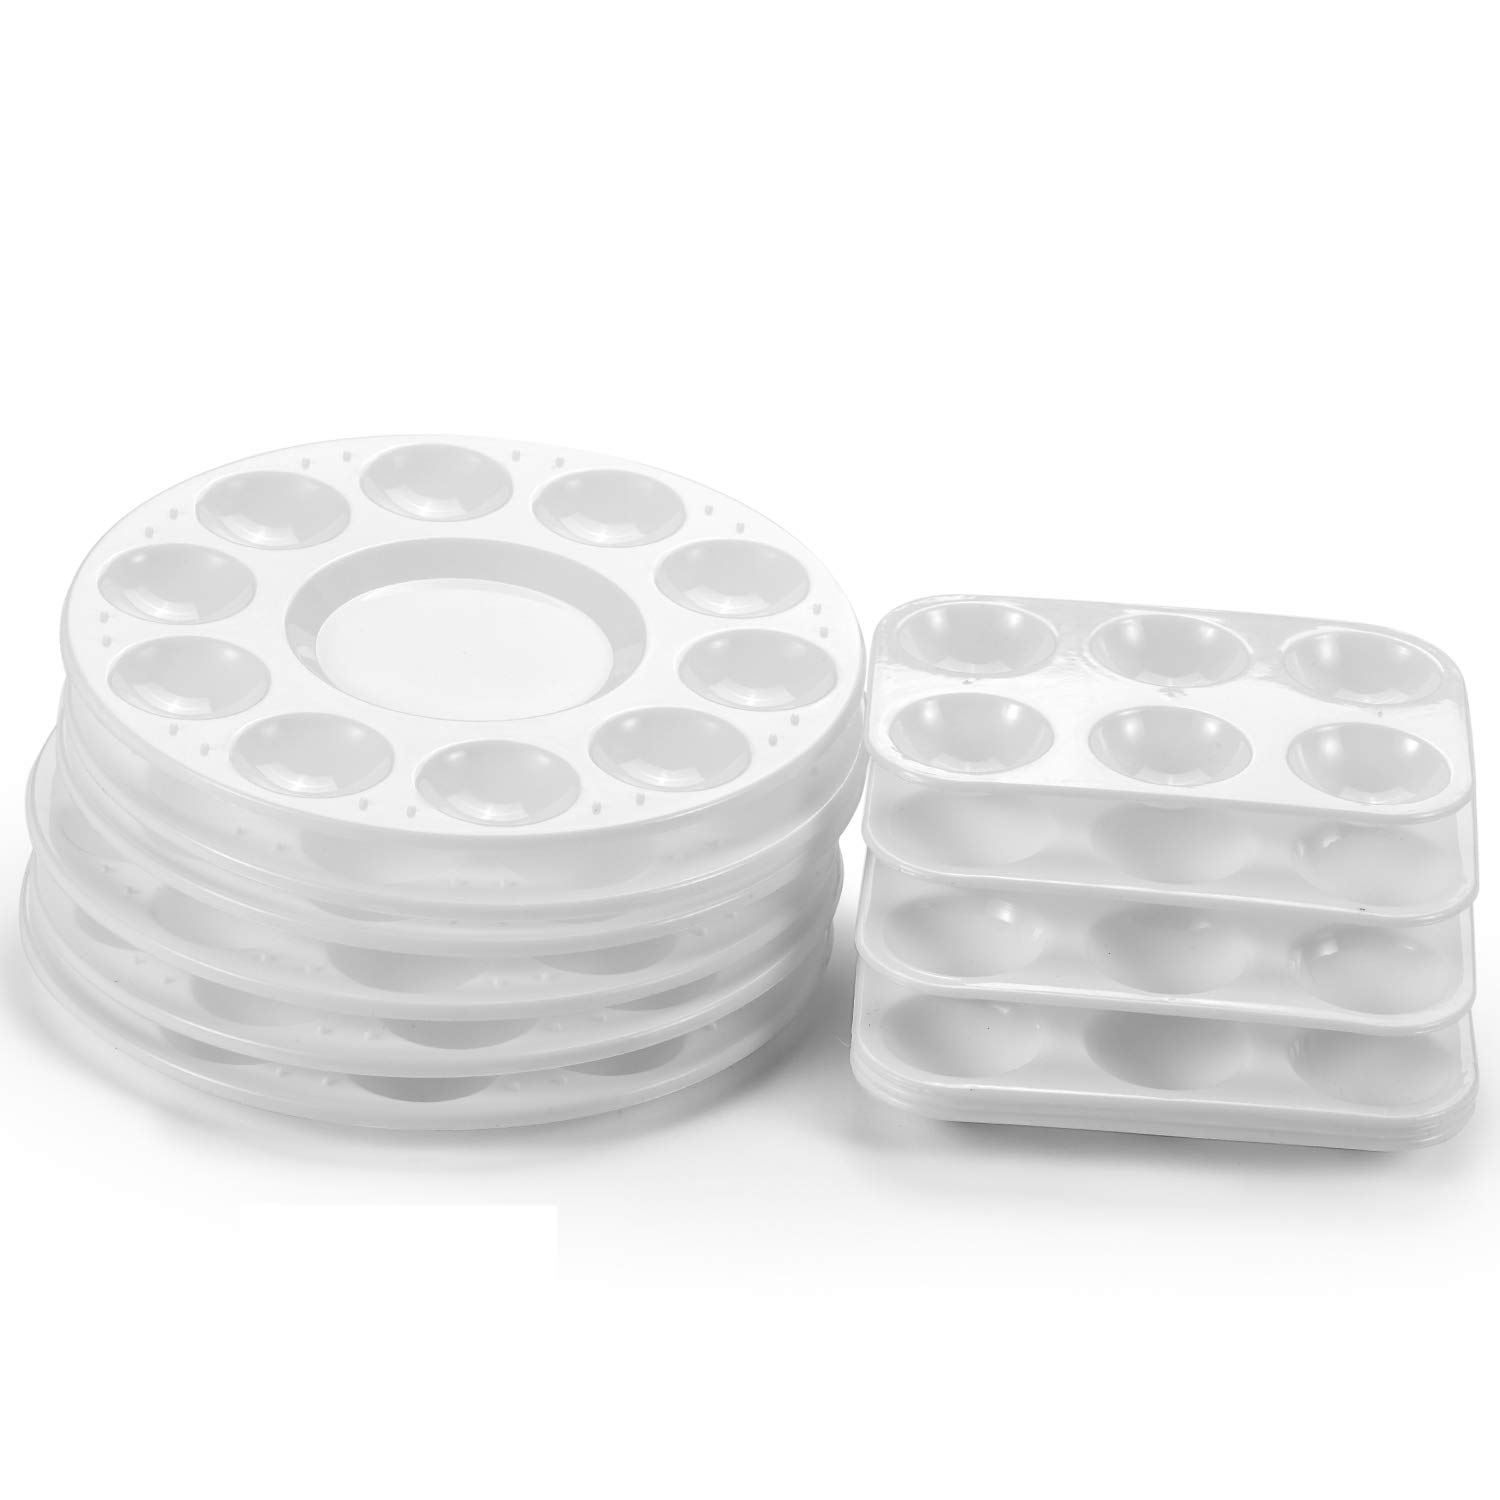 YOUNG4US 12 Pack Paint Tray Palettes Cups Plastic Rectangular & Round for Acrylic Oil Watercolor Craft DIY Art Painting Palettes, White